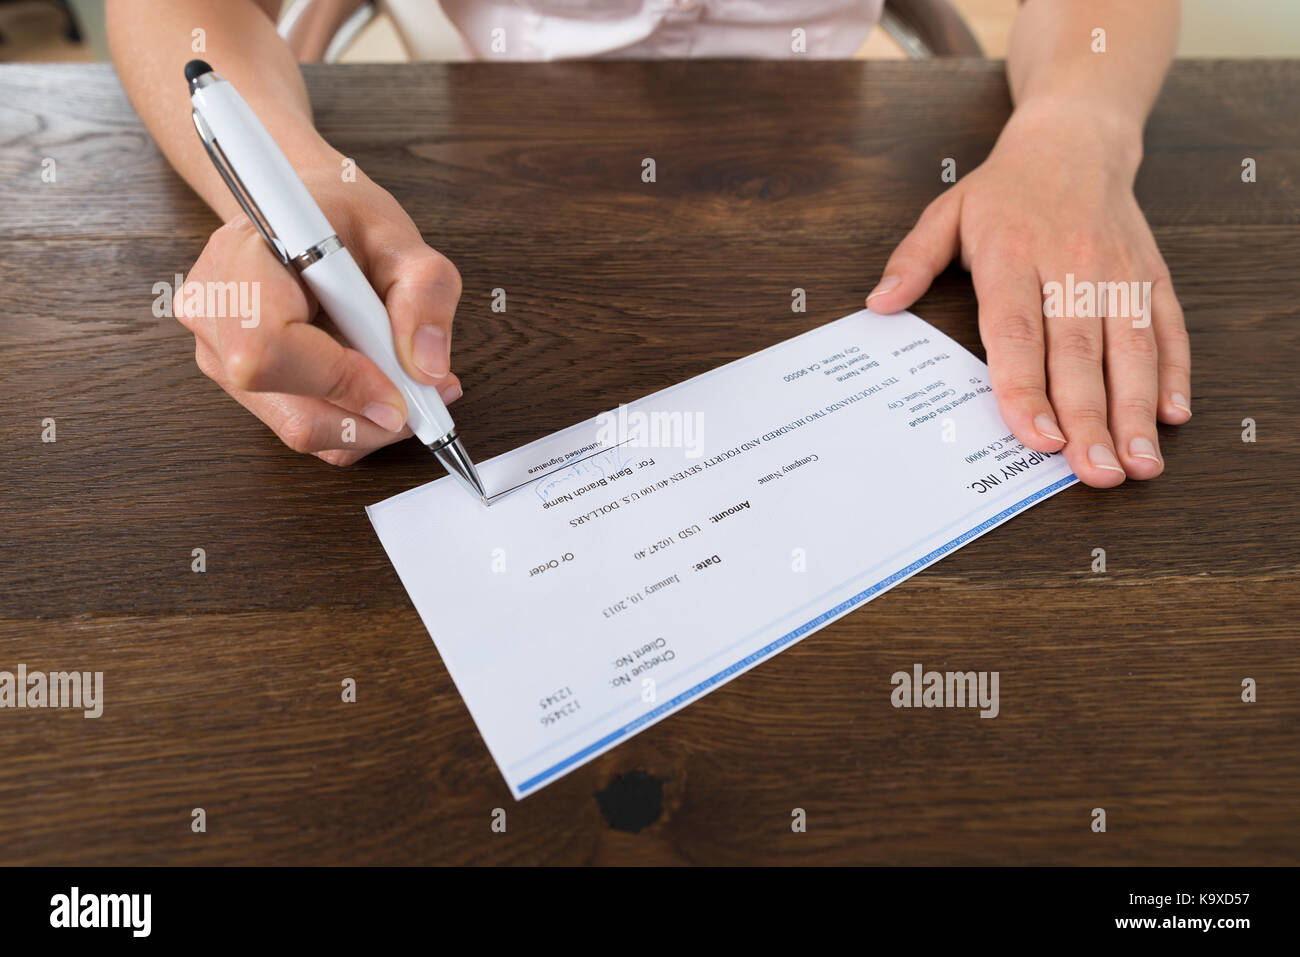 writing a cheque Writing your cheque you'll need to make sure you include all the right details so that your cheque isn't returned unpaid or delayed like: the date (cheques are valid for 6 months.